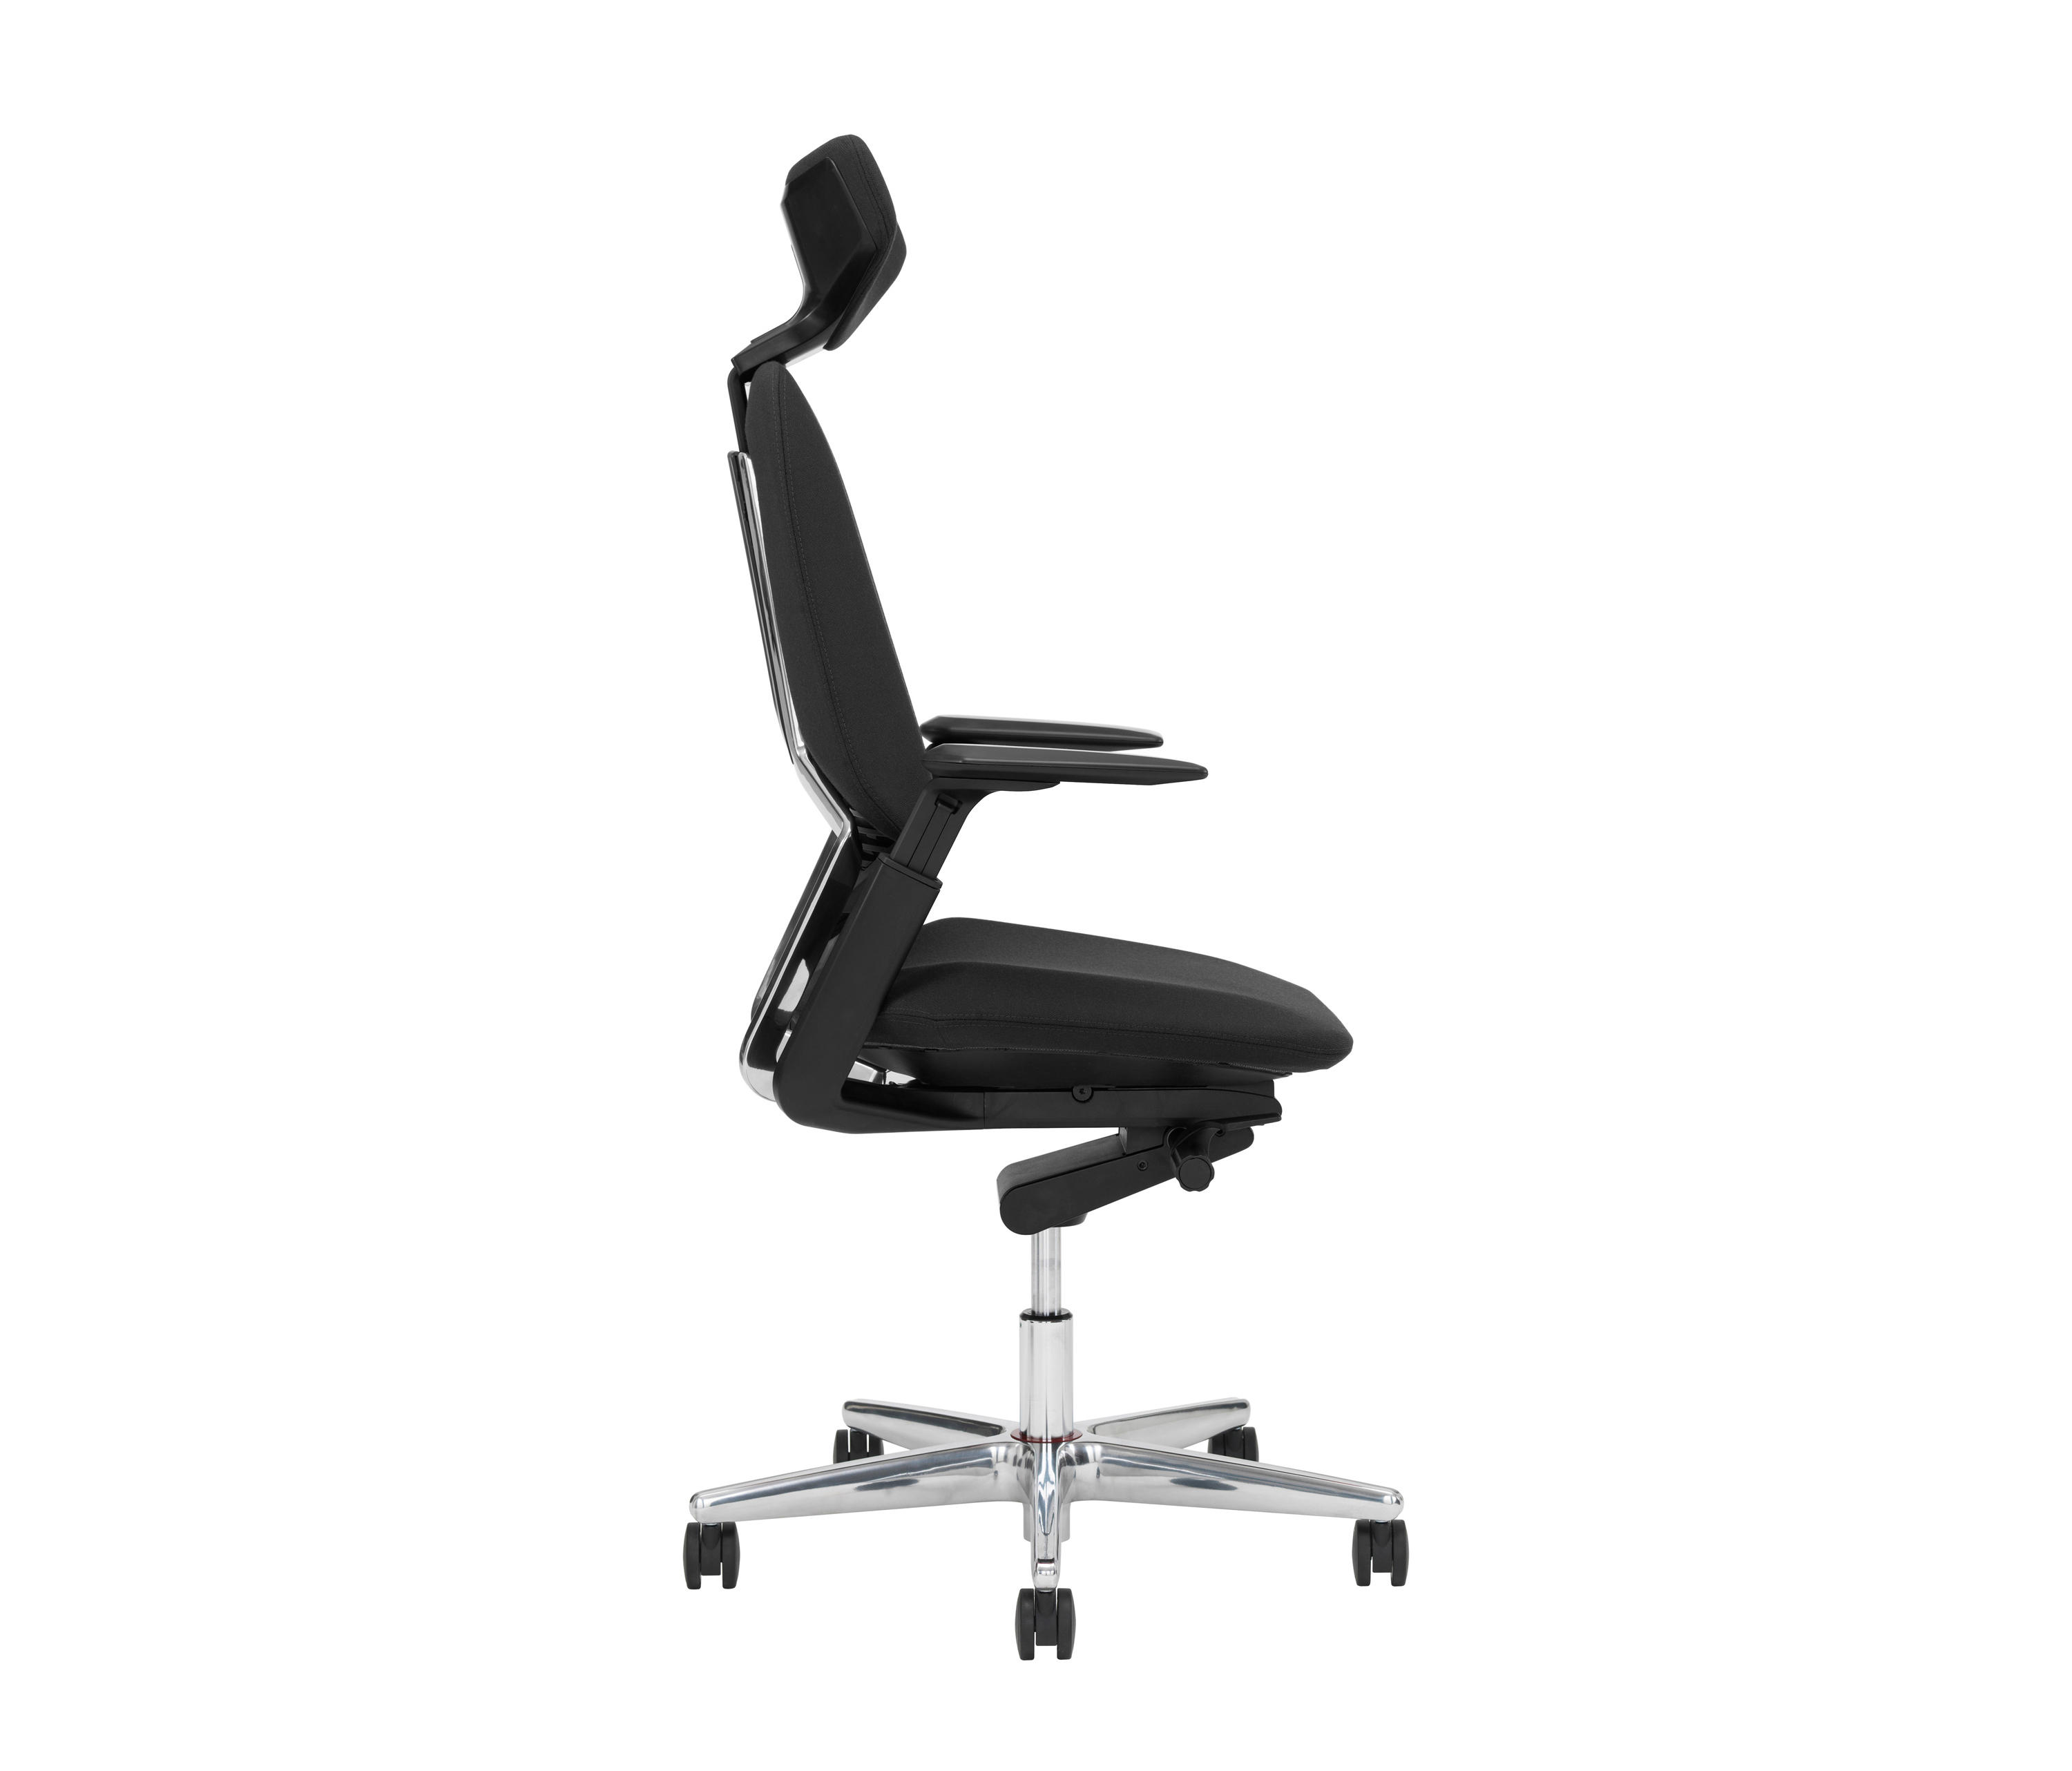 office chair leaning to one side brown wicker chairs at lowes savo s3 ln management from architonic